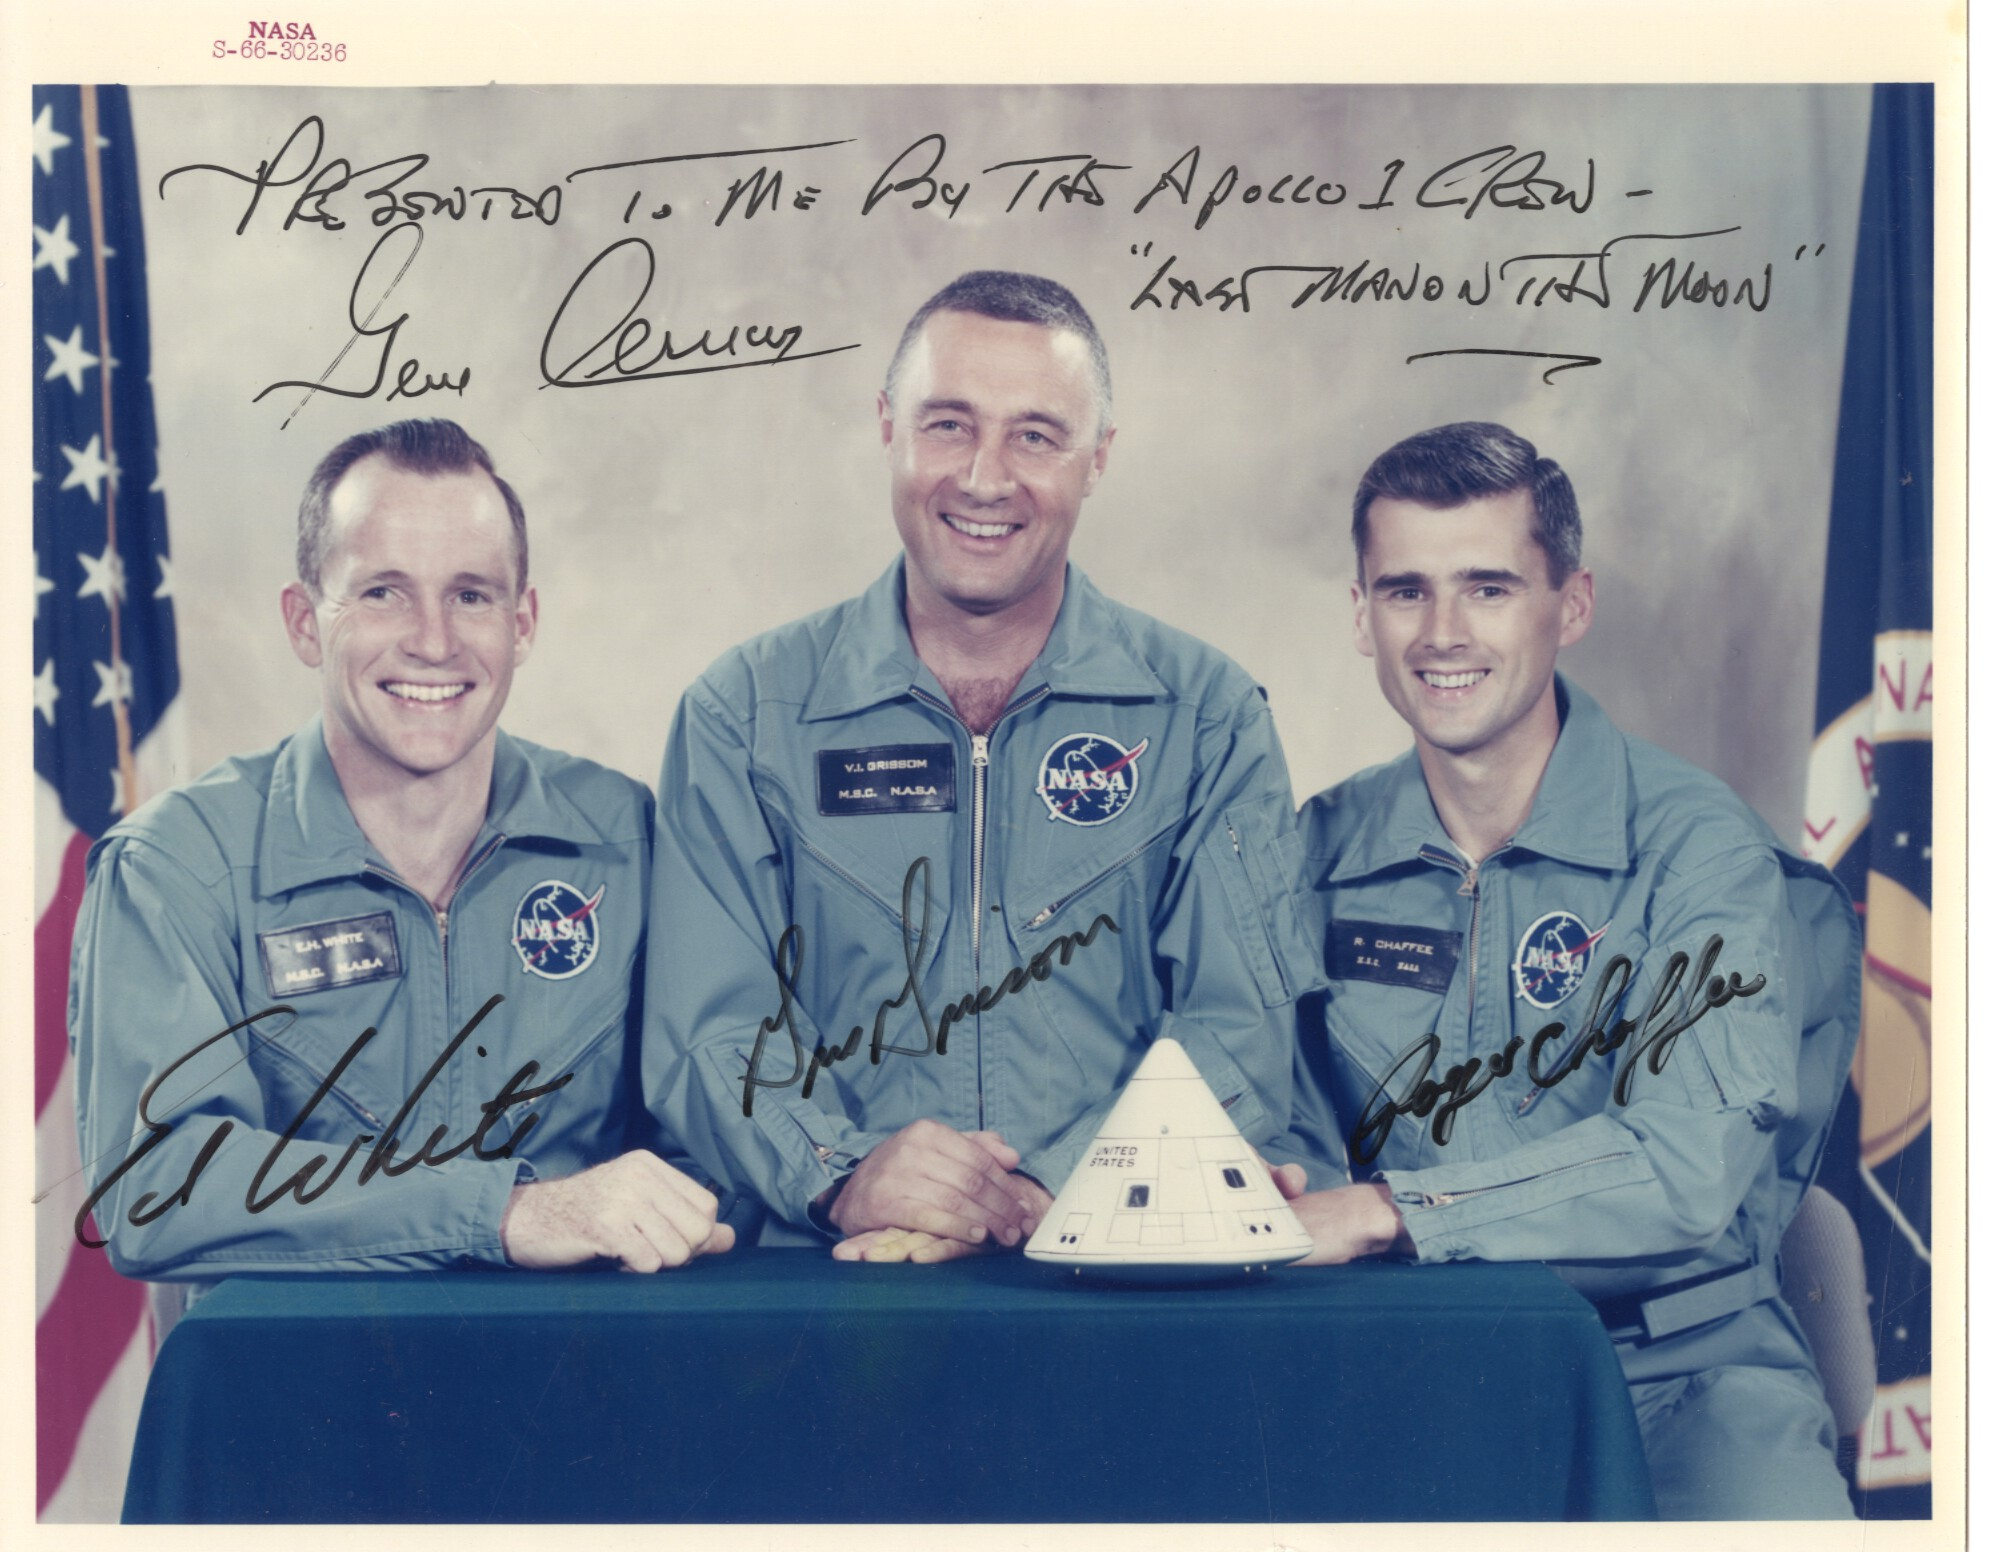 Apollo 1 photo from the Gene Cernan collection, 1966 (Cernan is a much later signature)